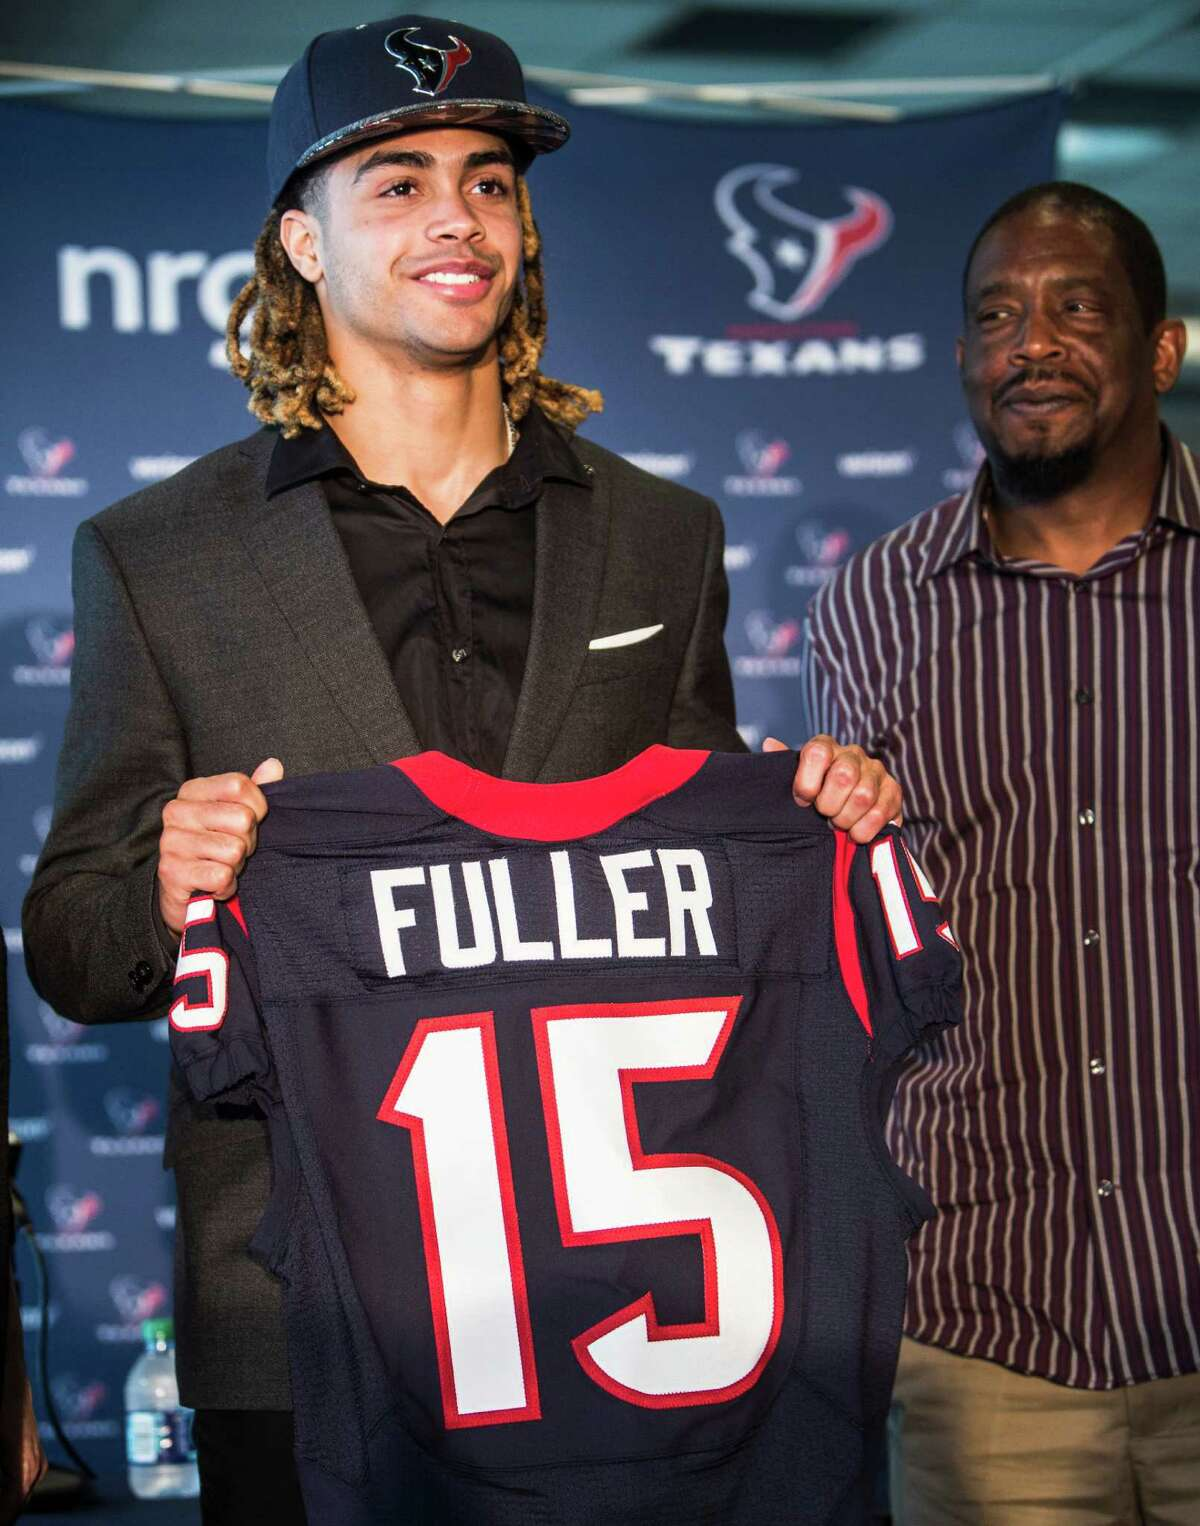 AFC SOUTH Houston Texans Grade: B-plus Comment: They solved their speed problem on offense with Will Fuller (4.32), Braxton Miller (4.41) and Tyler Ervin (4.41). Ervin could be the return specialist they've been missing. Nick Martin should win the starting job.